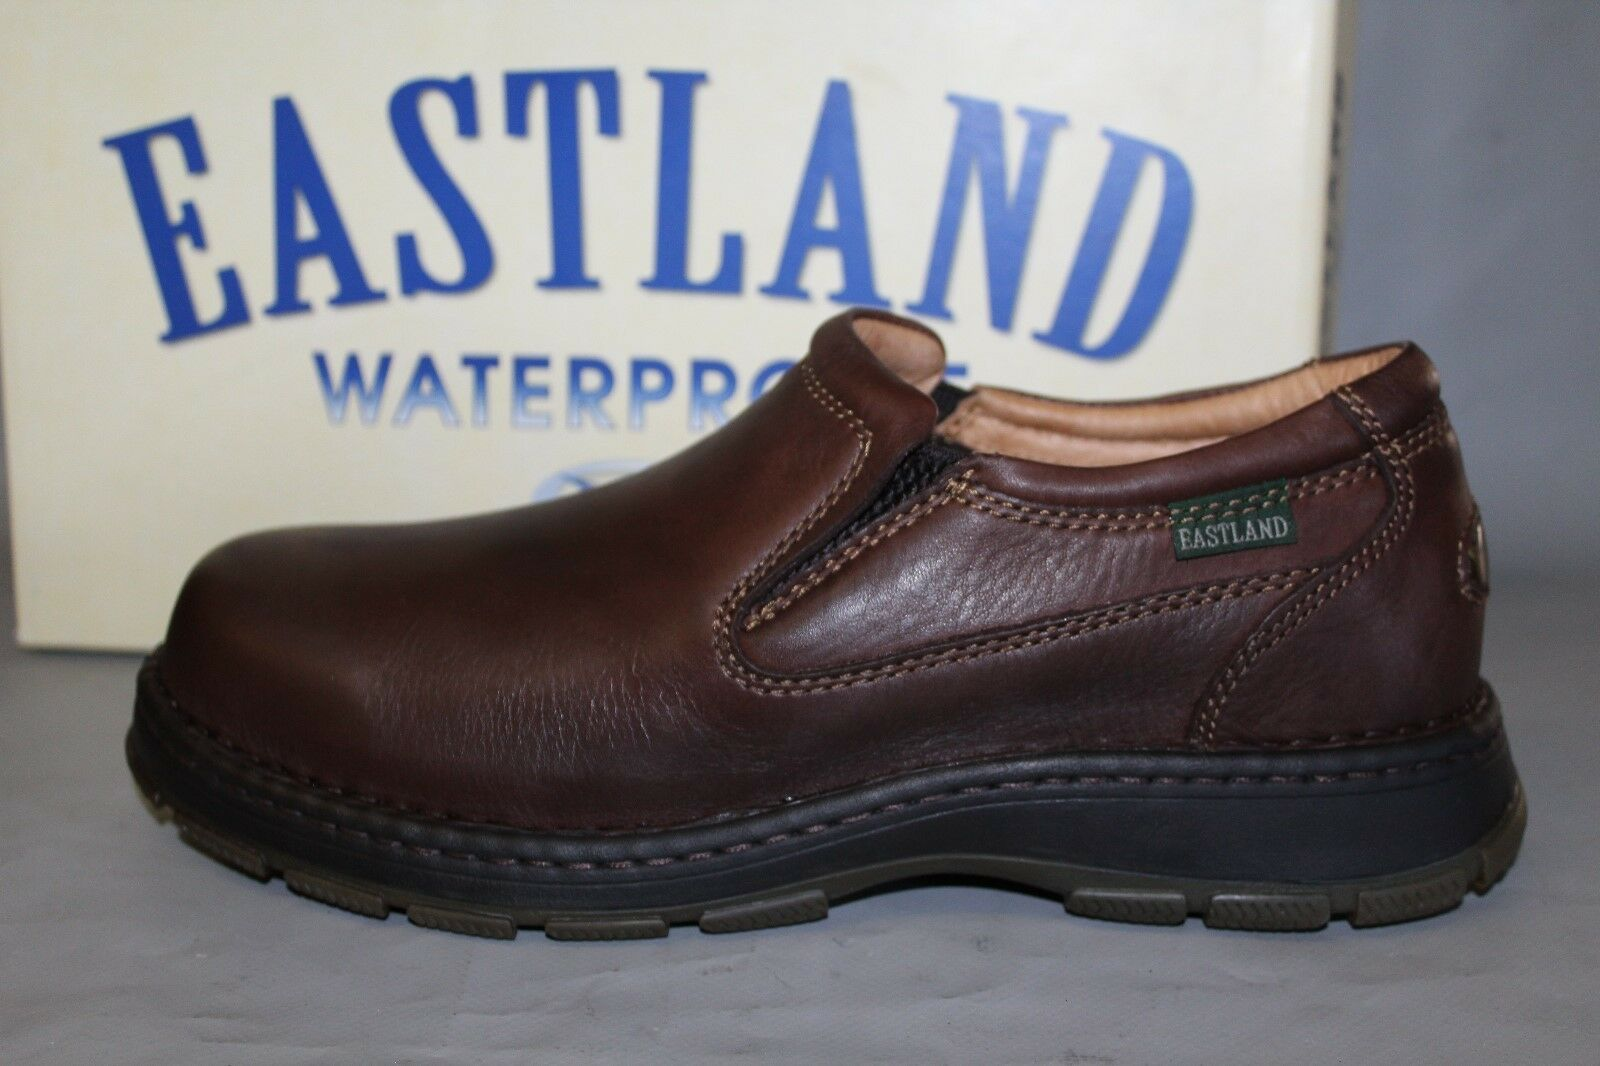 NEW Mens Eastland Typhoon Size 10.5 Med. Brown Waterproof Leather Slip on shoes